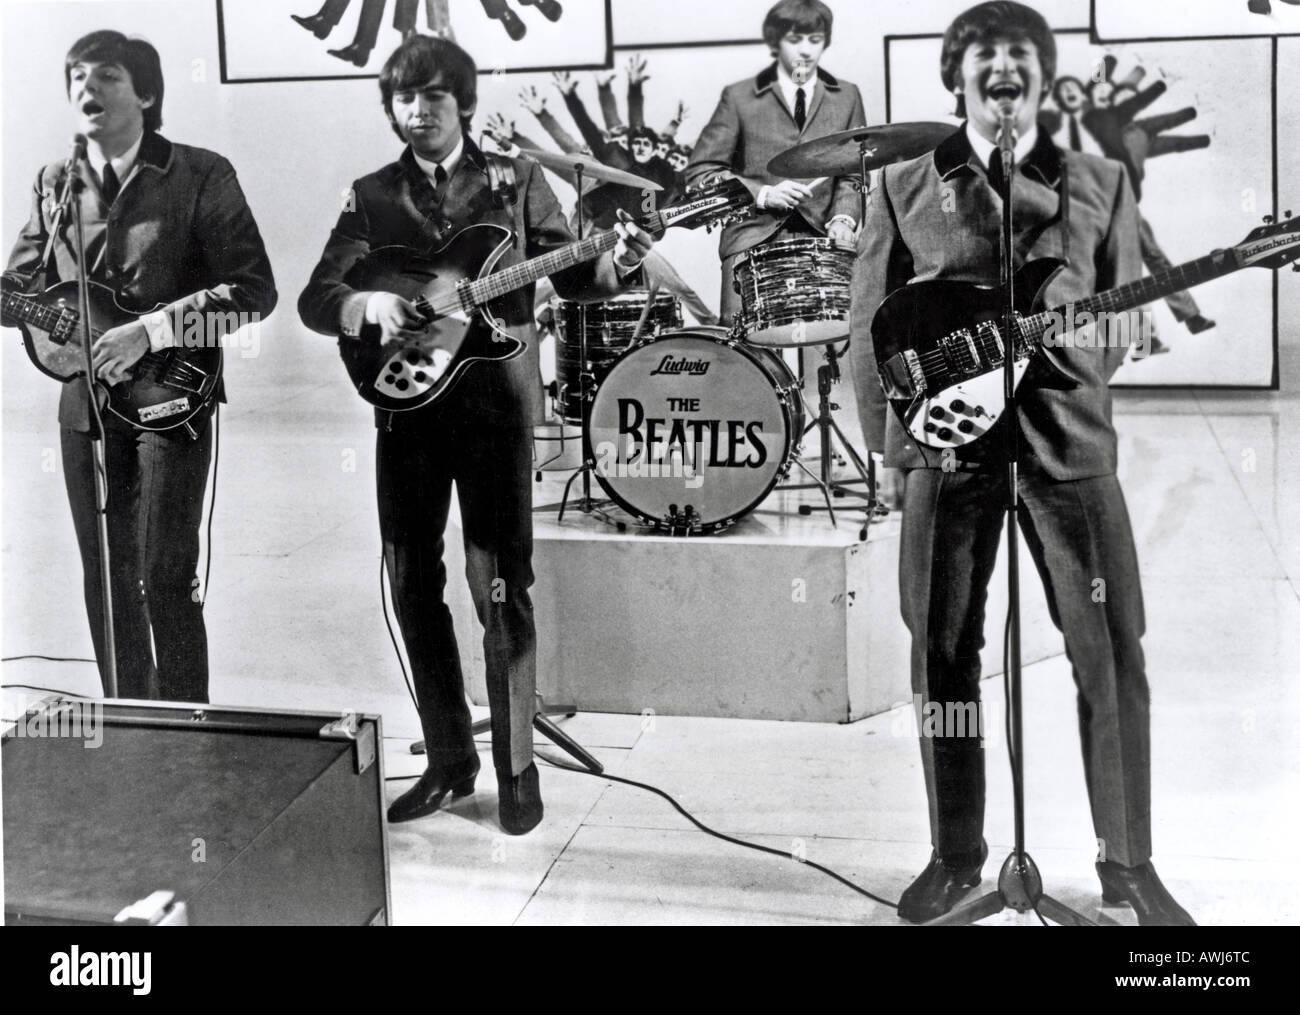 A HARD DAY'S NIGHT  1964 UA film with the Beatles - Stock Image